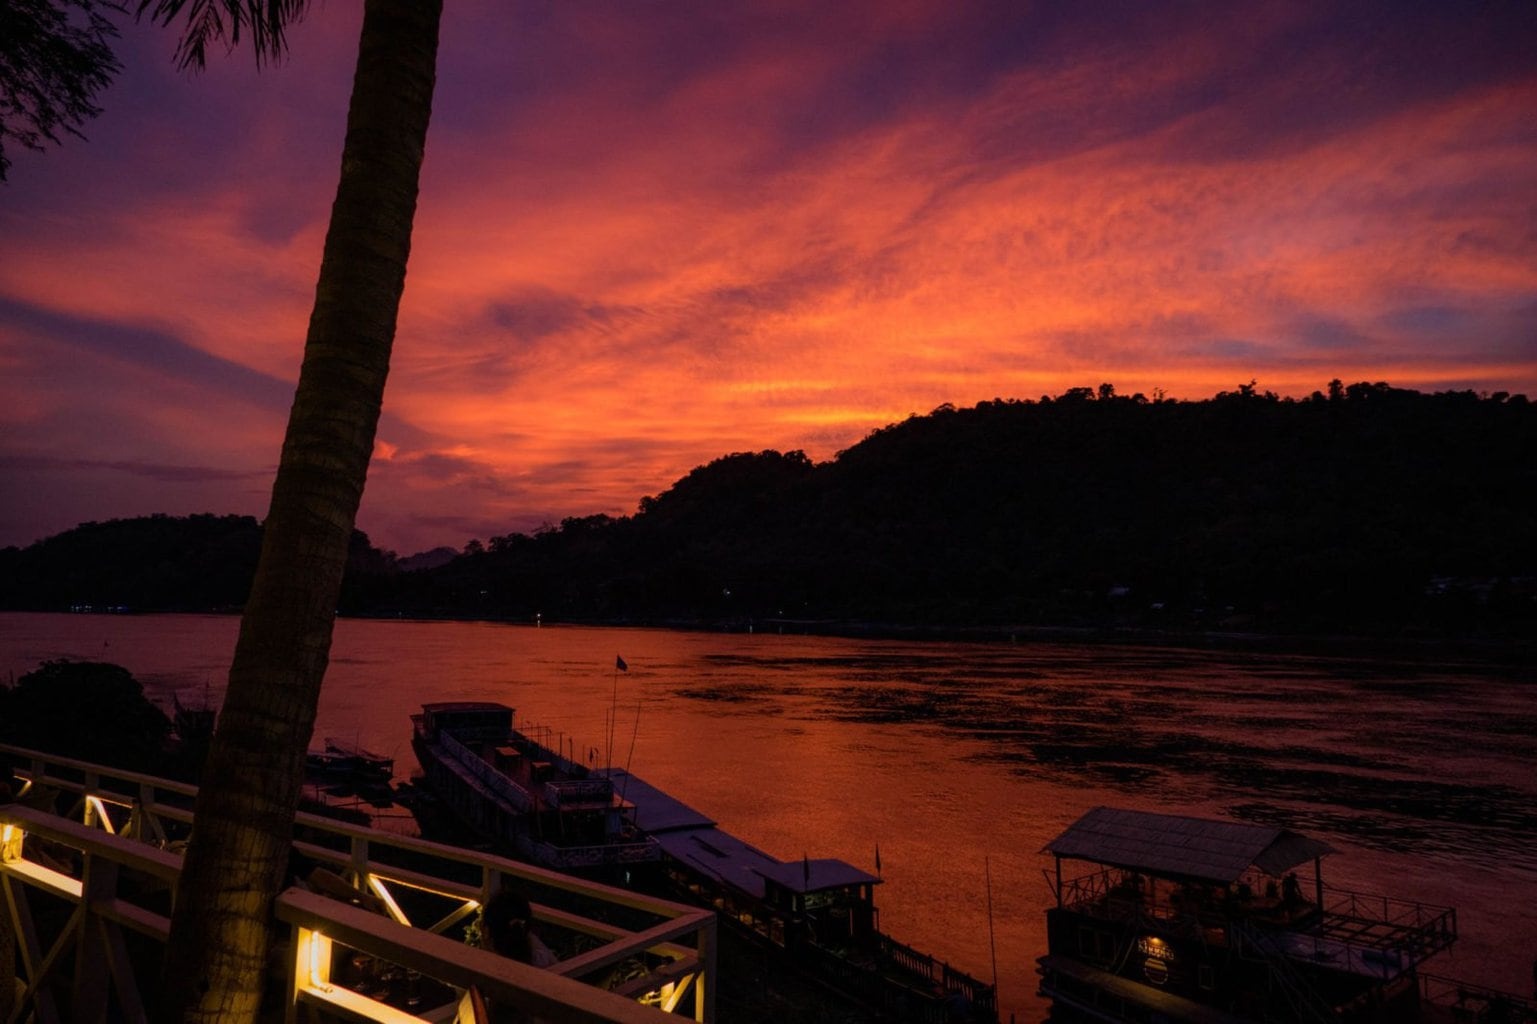 Belle Rive Bar sunset, Luang Prabang